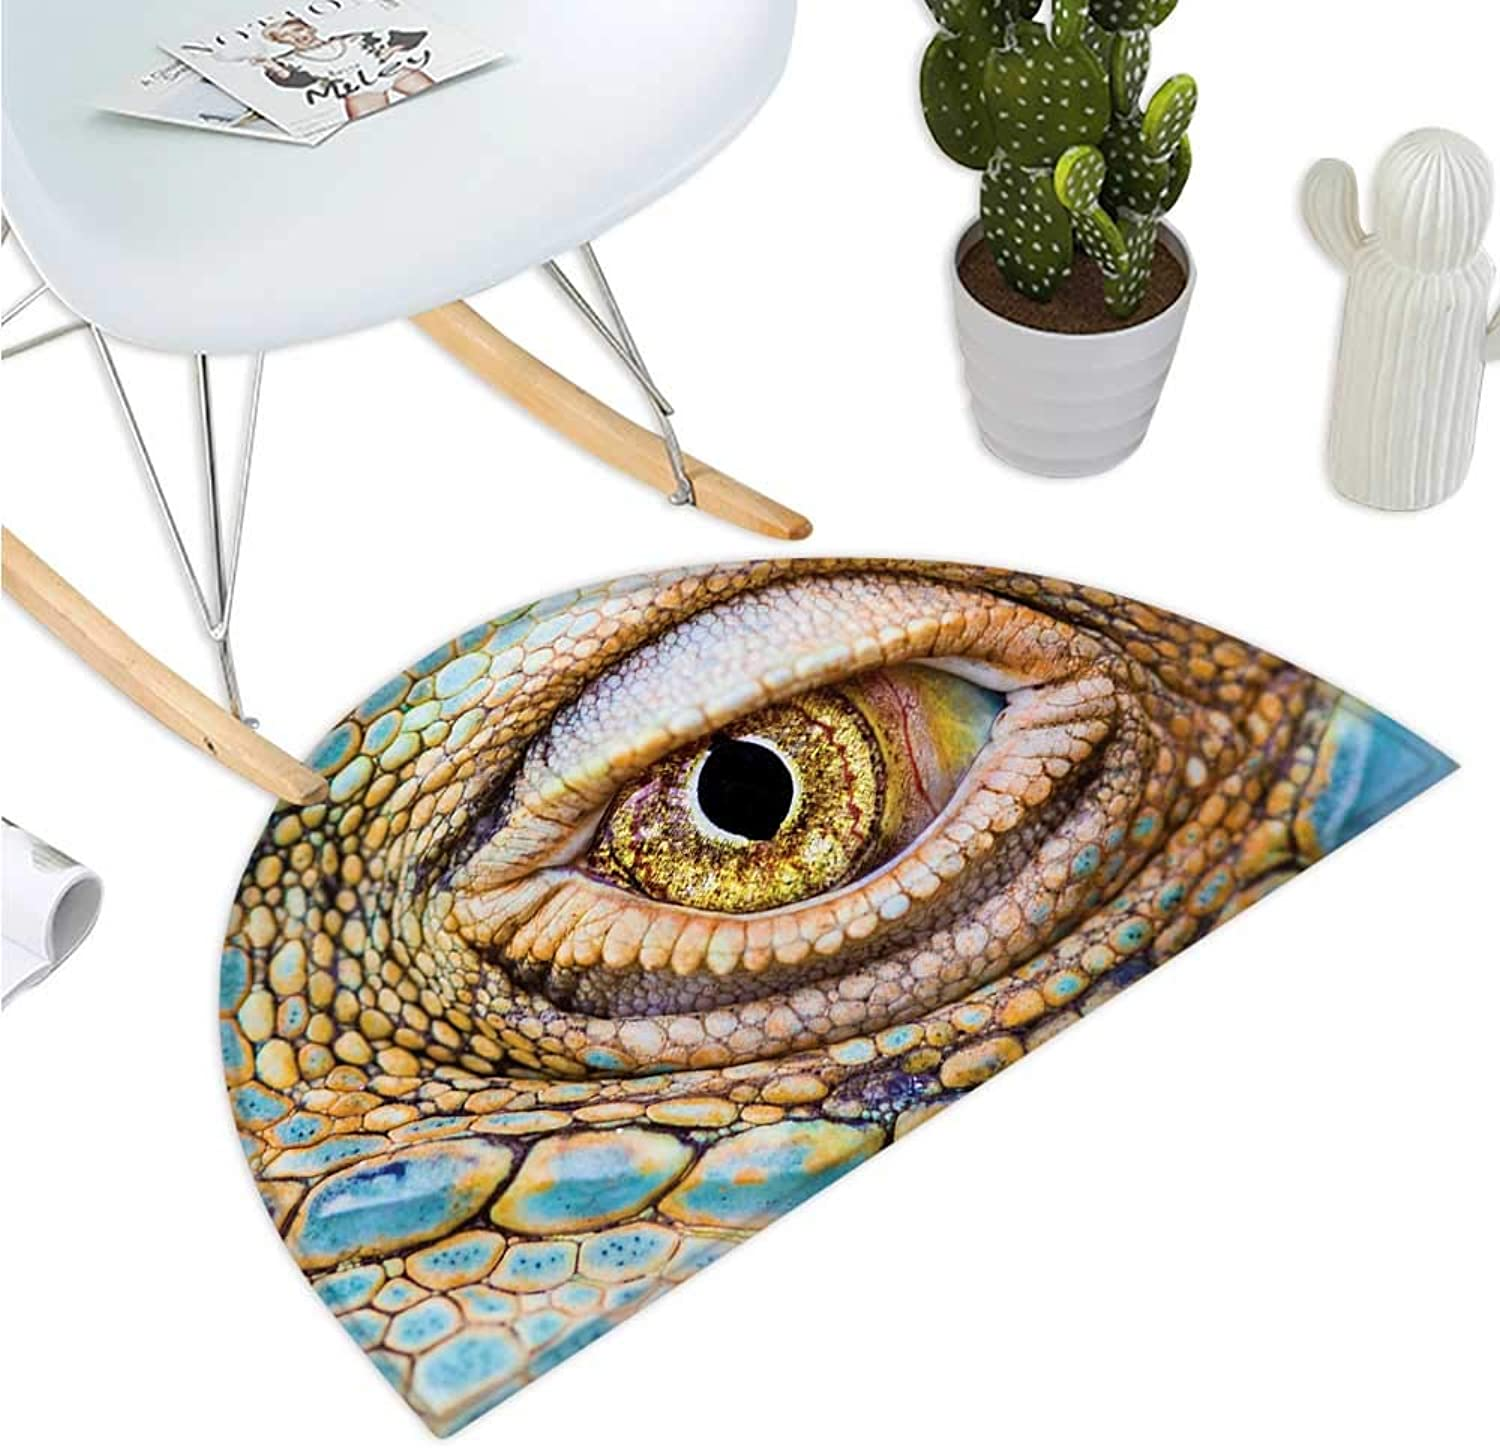 Reptile Semicircle Doormat Graphic of Creepy Eye of Iguana with colorful Details in Skin Tropical Theme Print Entry Door Mat H 39.3  xD 59  Multicolor